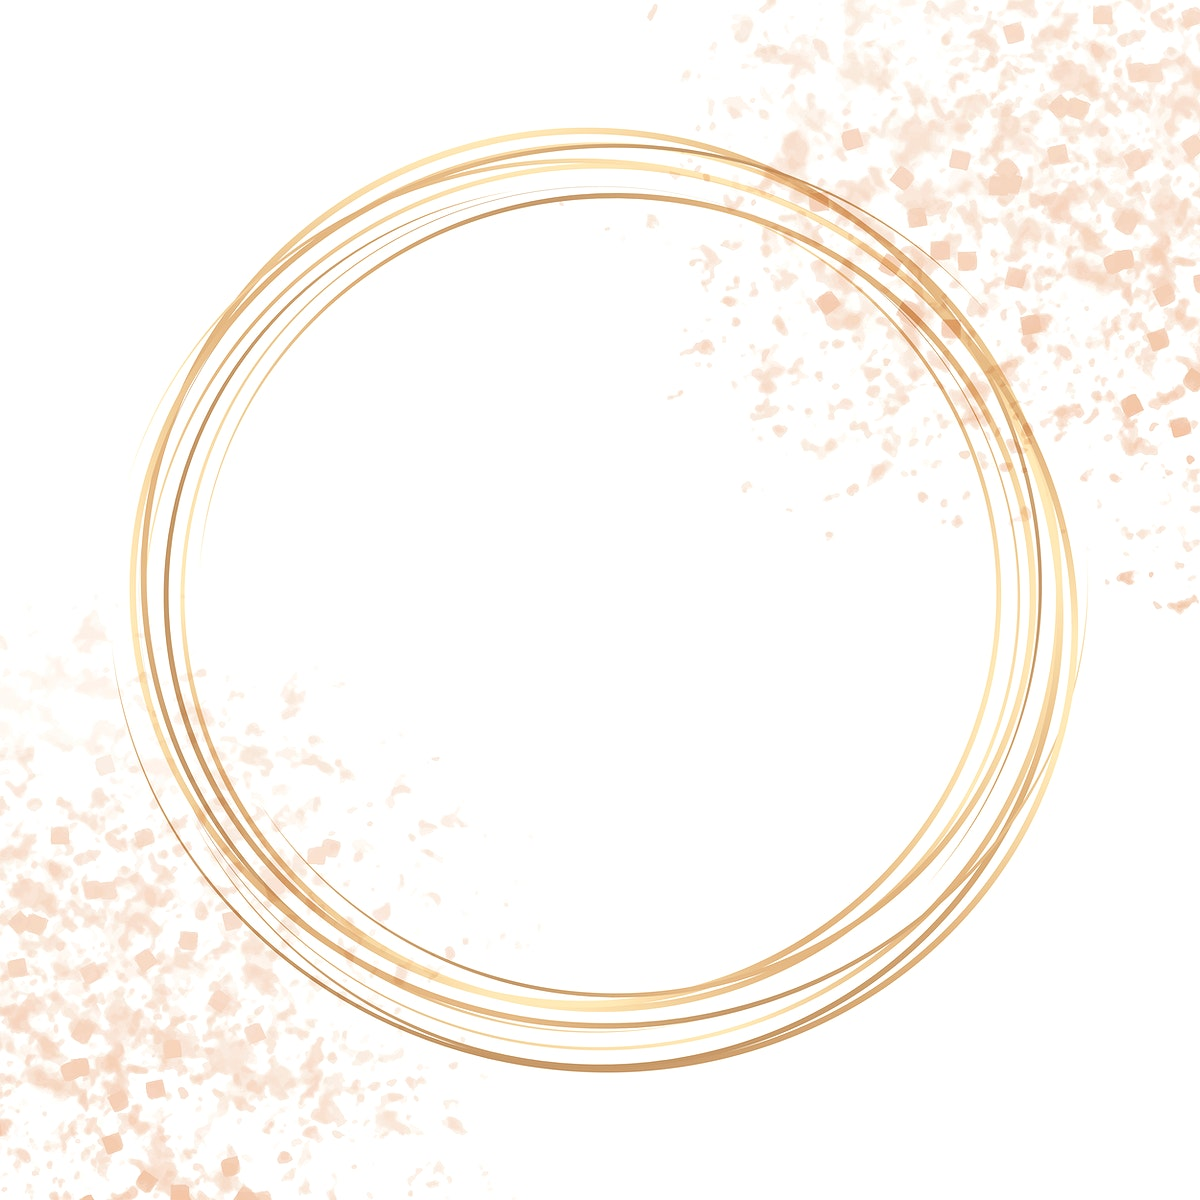 Gold circle frame on a pastel pink confetti background vector